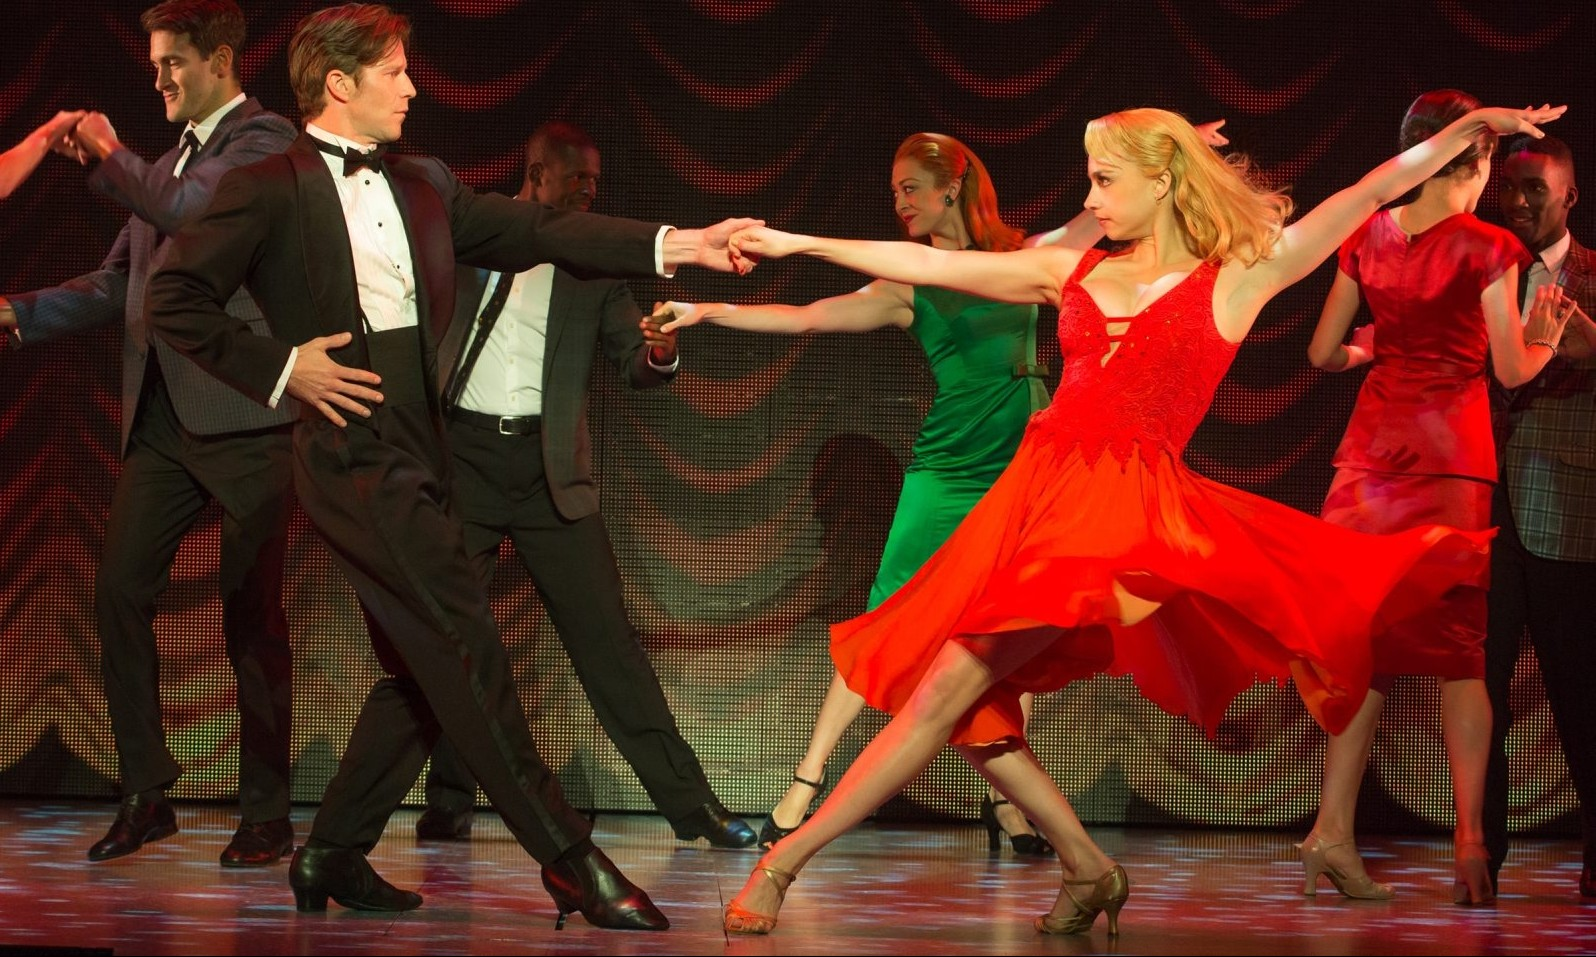 Christopher Tierney and Rachel Boone star in the touring production of 'Dirty Dancing' playing in Shea's Performing Arts Center.